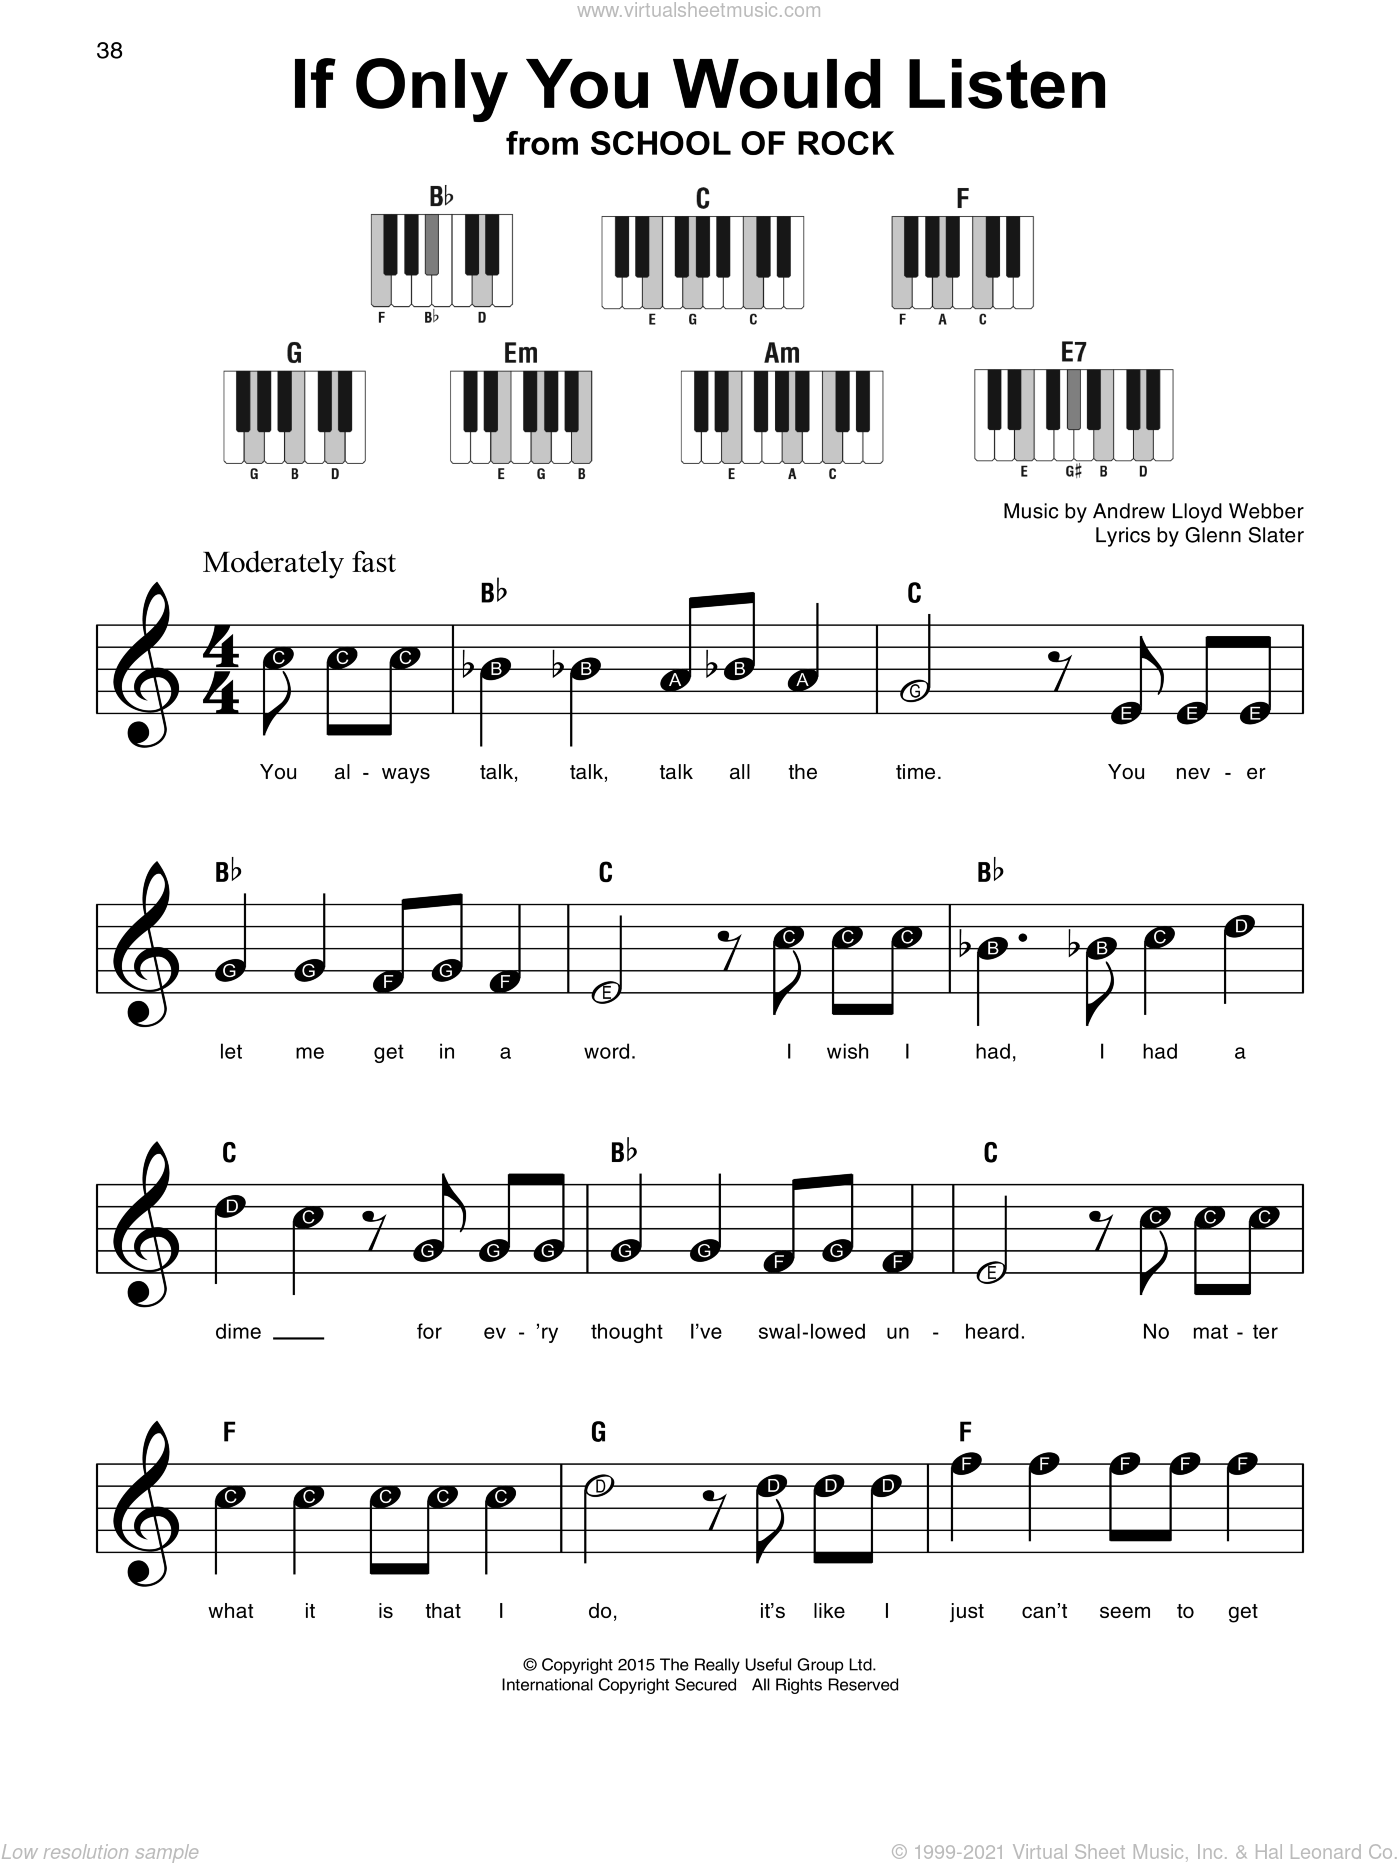 If Only You Would Listen (from School of Rock: The Musical) sheet music for piano solo by Andrew Lloyd Webber and Glenn Slater, beginner skill level